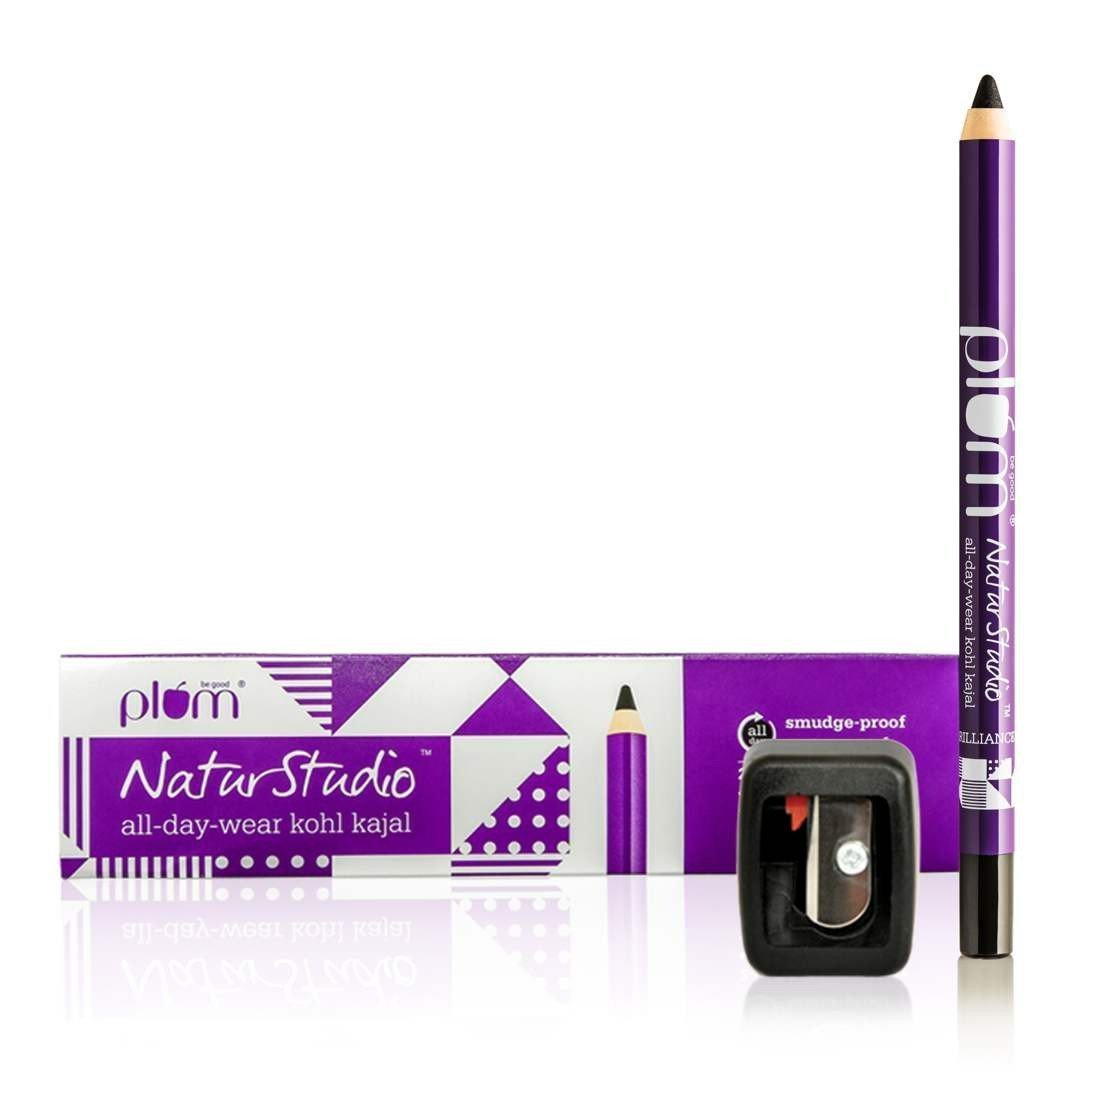 Plum NaturStudio All-Day-Wear Kohl Kajal(with free